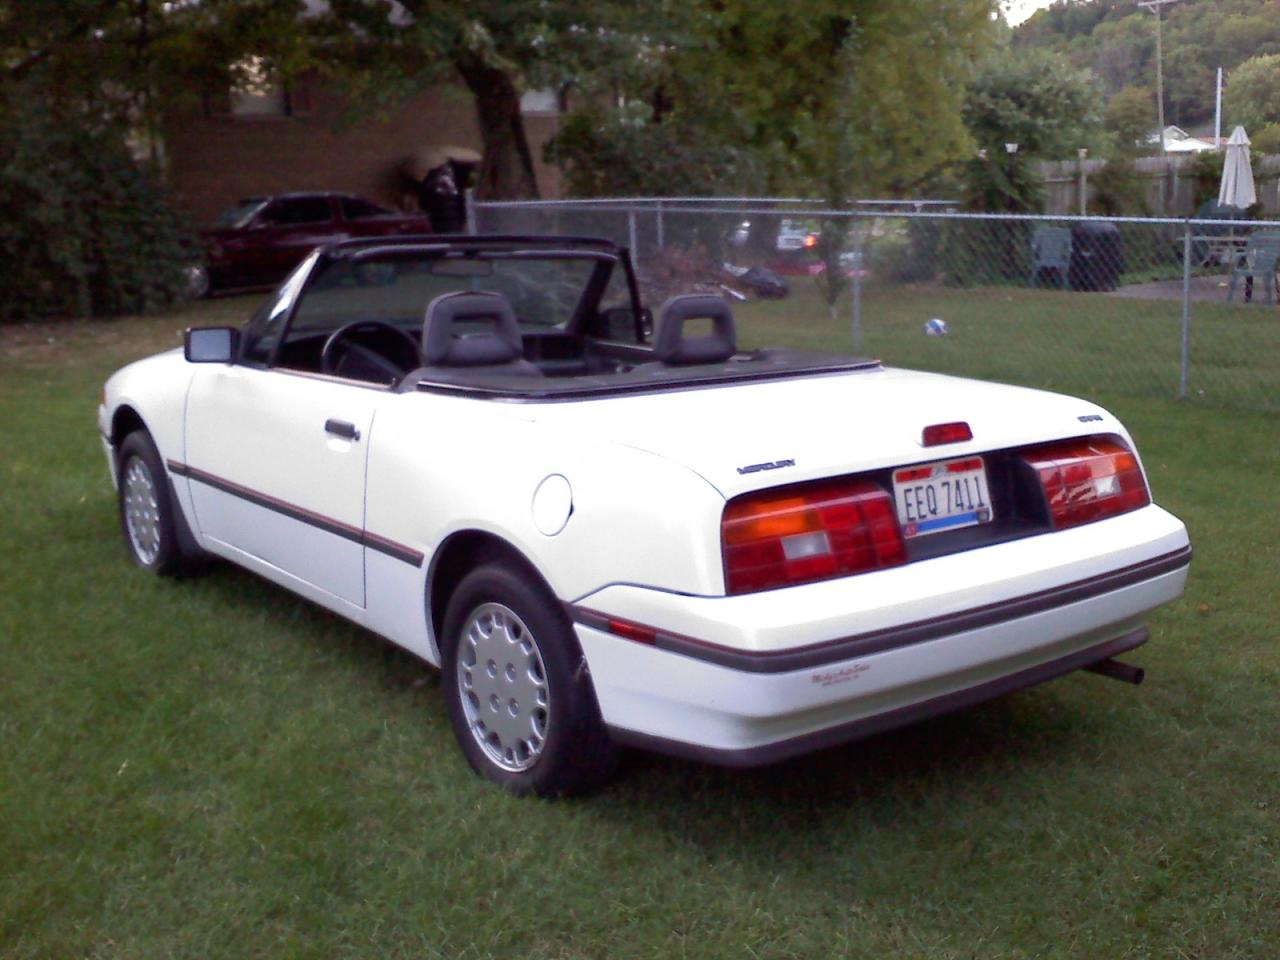 800 1024 1280 1600 origin 1992 mercury capri